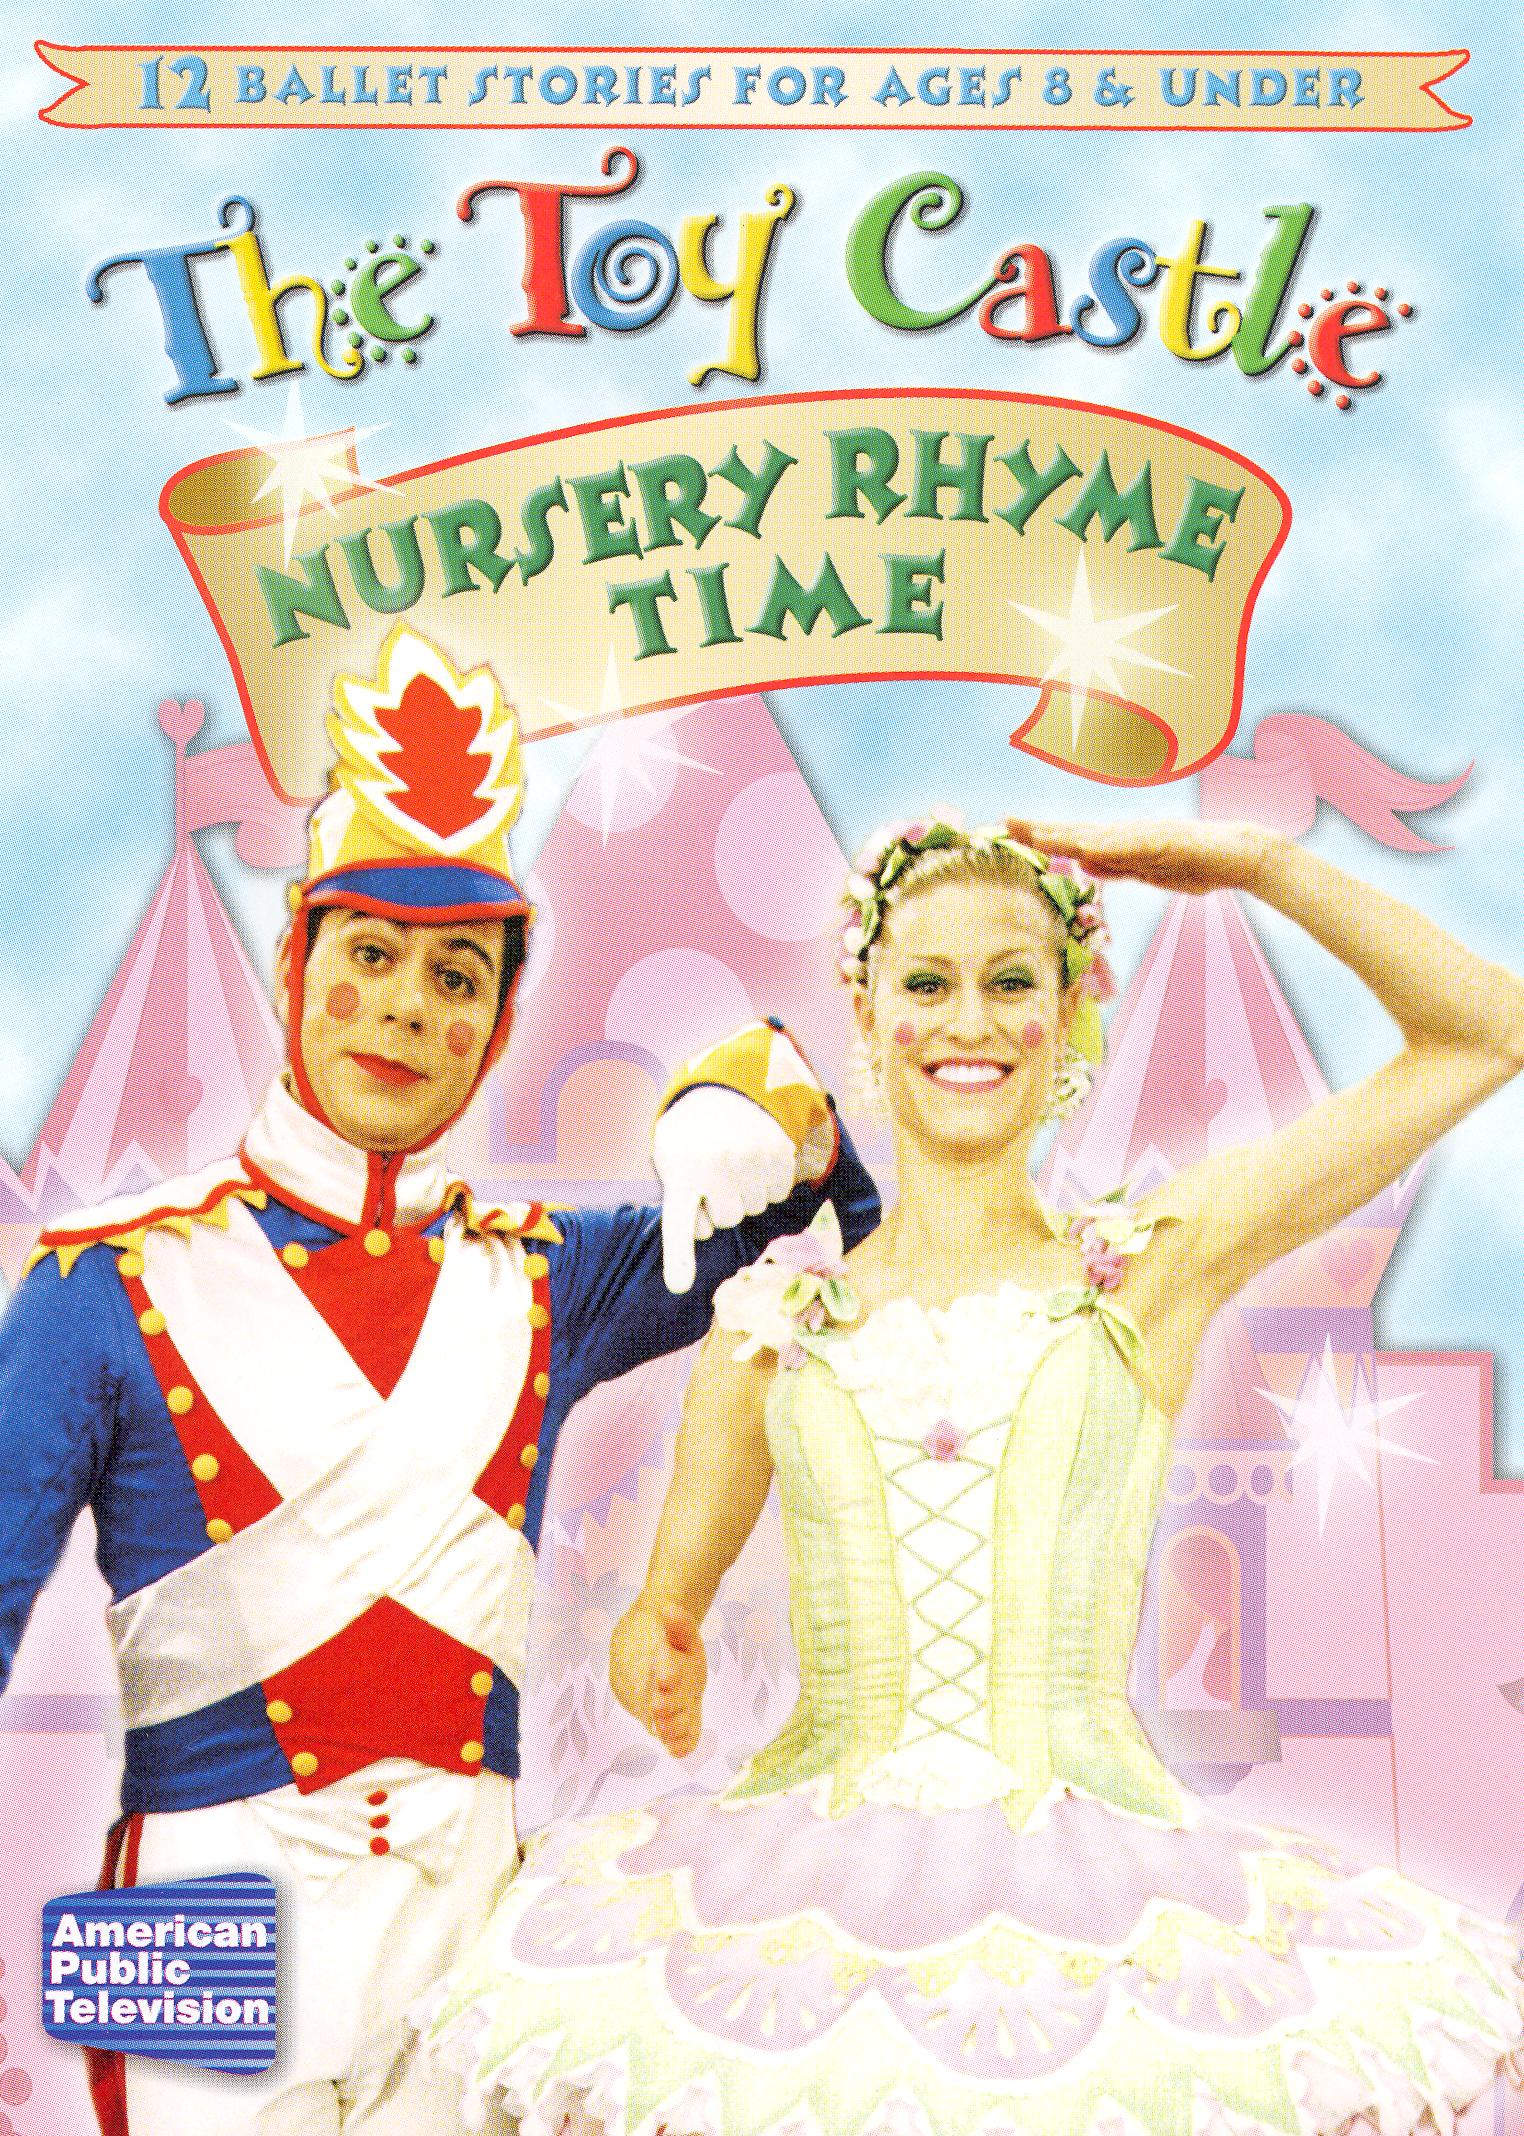 The Toy Castle: Nursery Rhyme Time